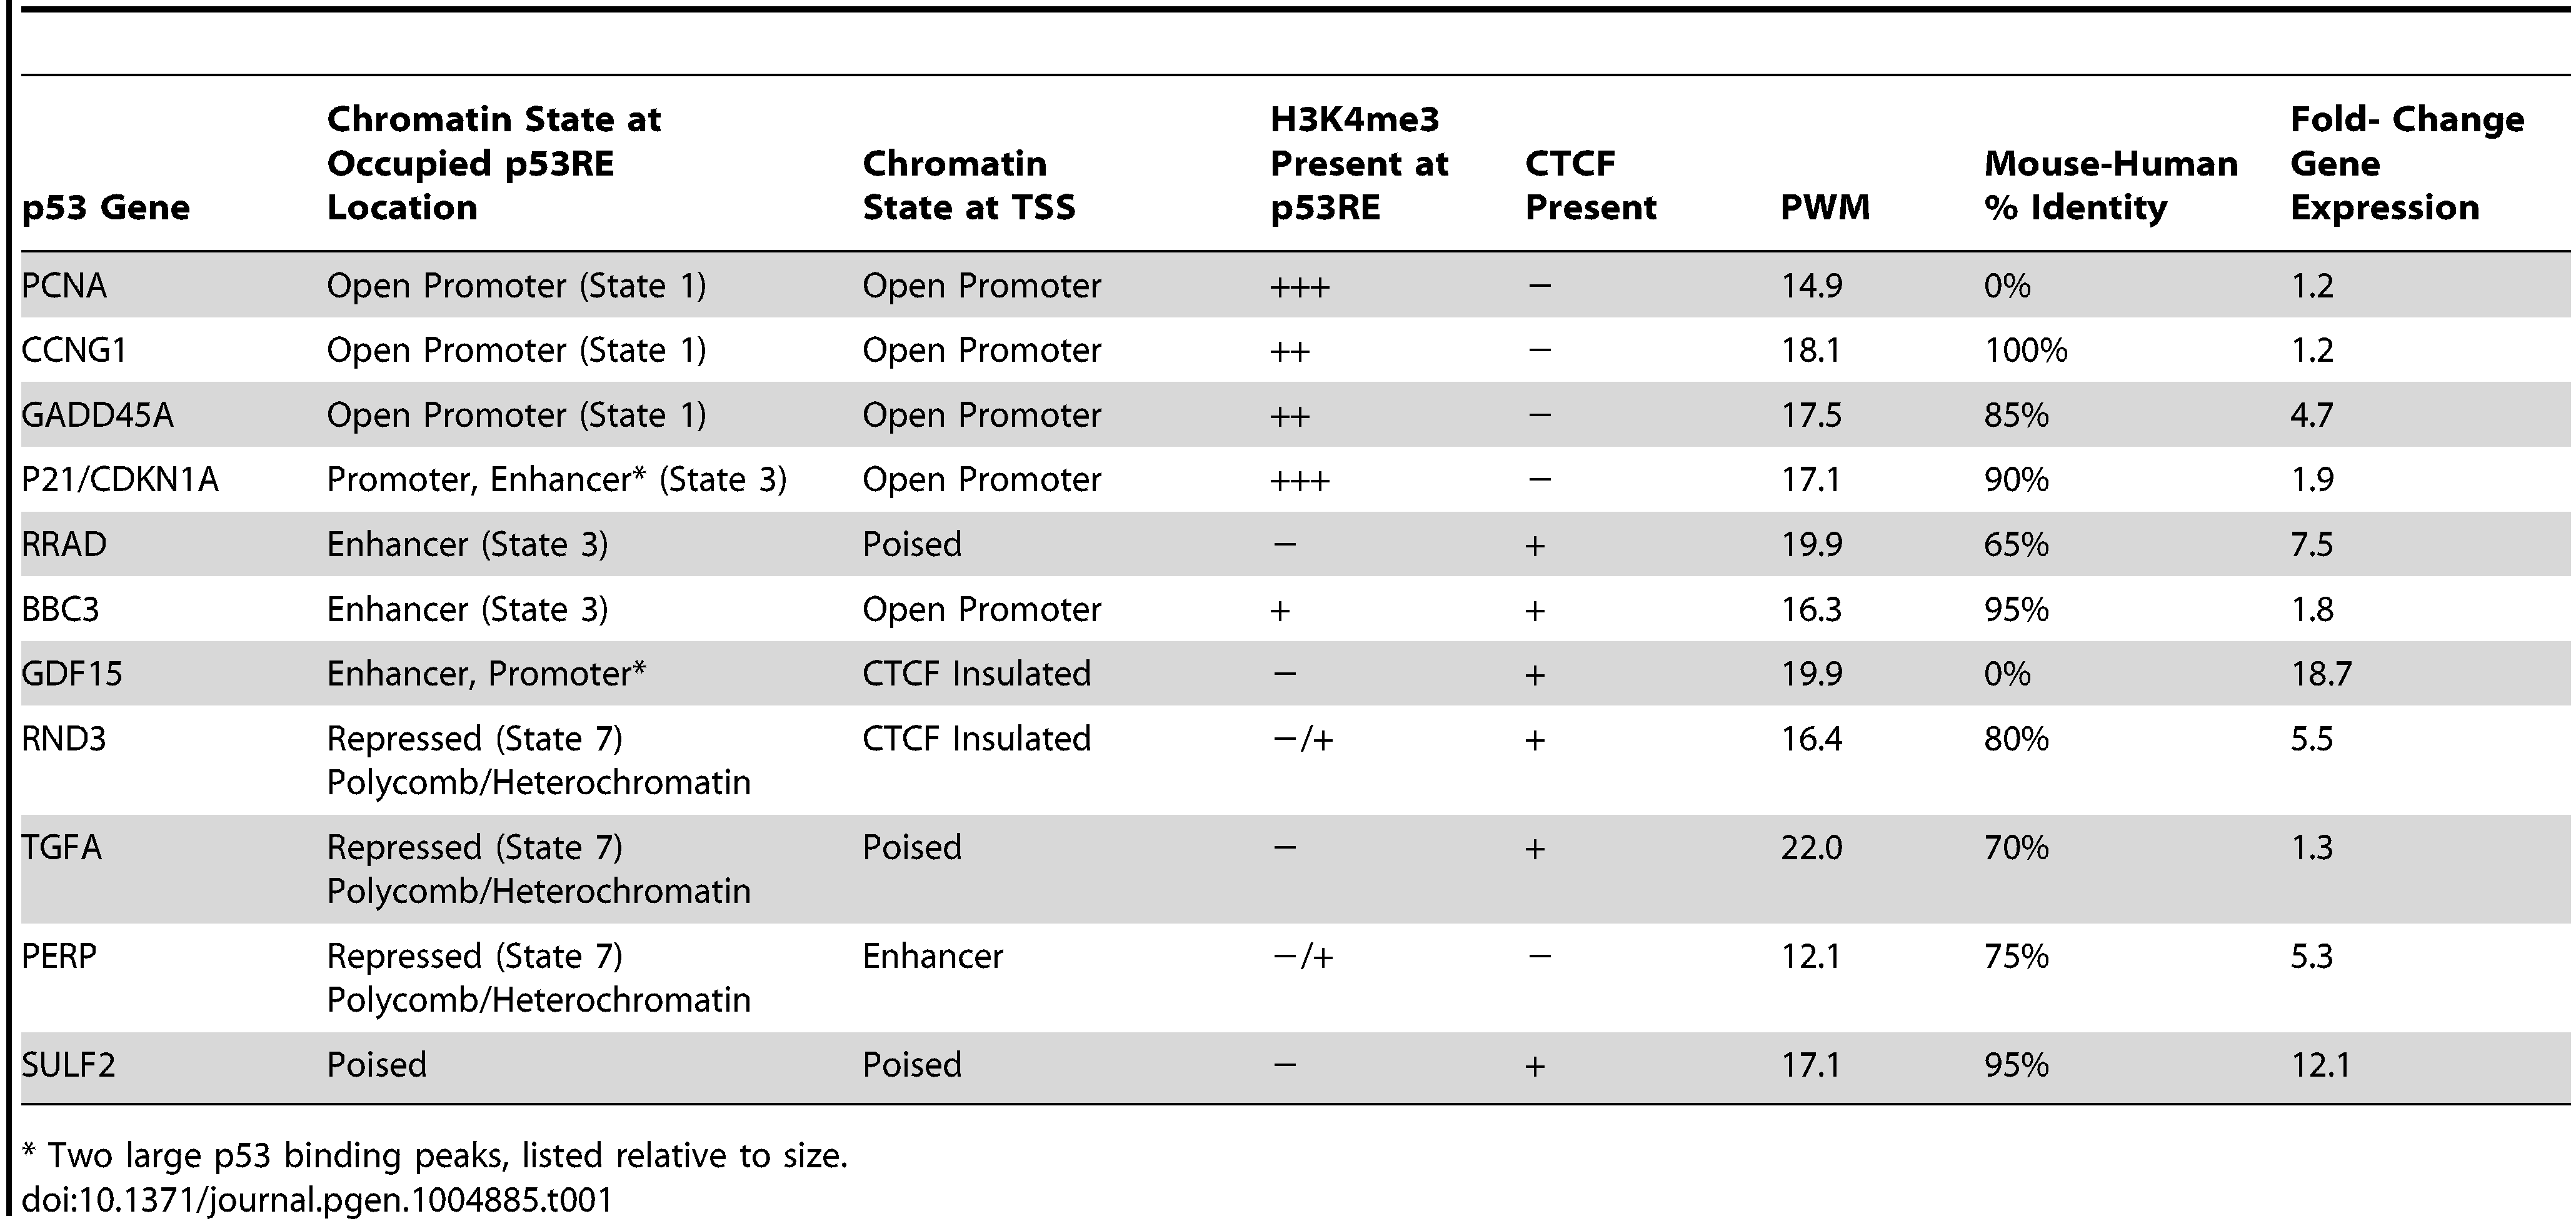 Chromatin state characteristics of some known p53 regulated genes.